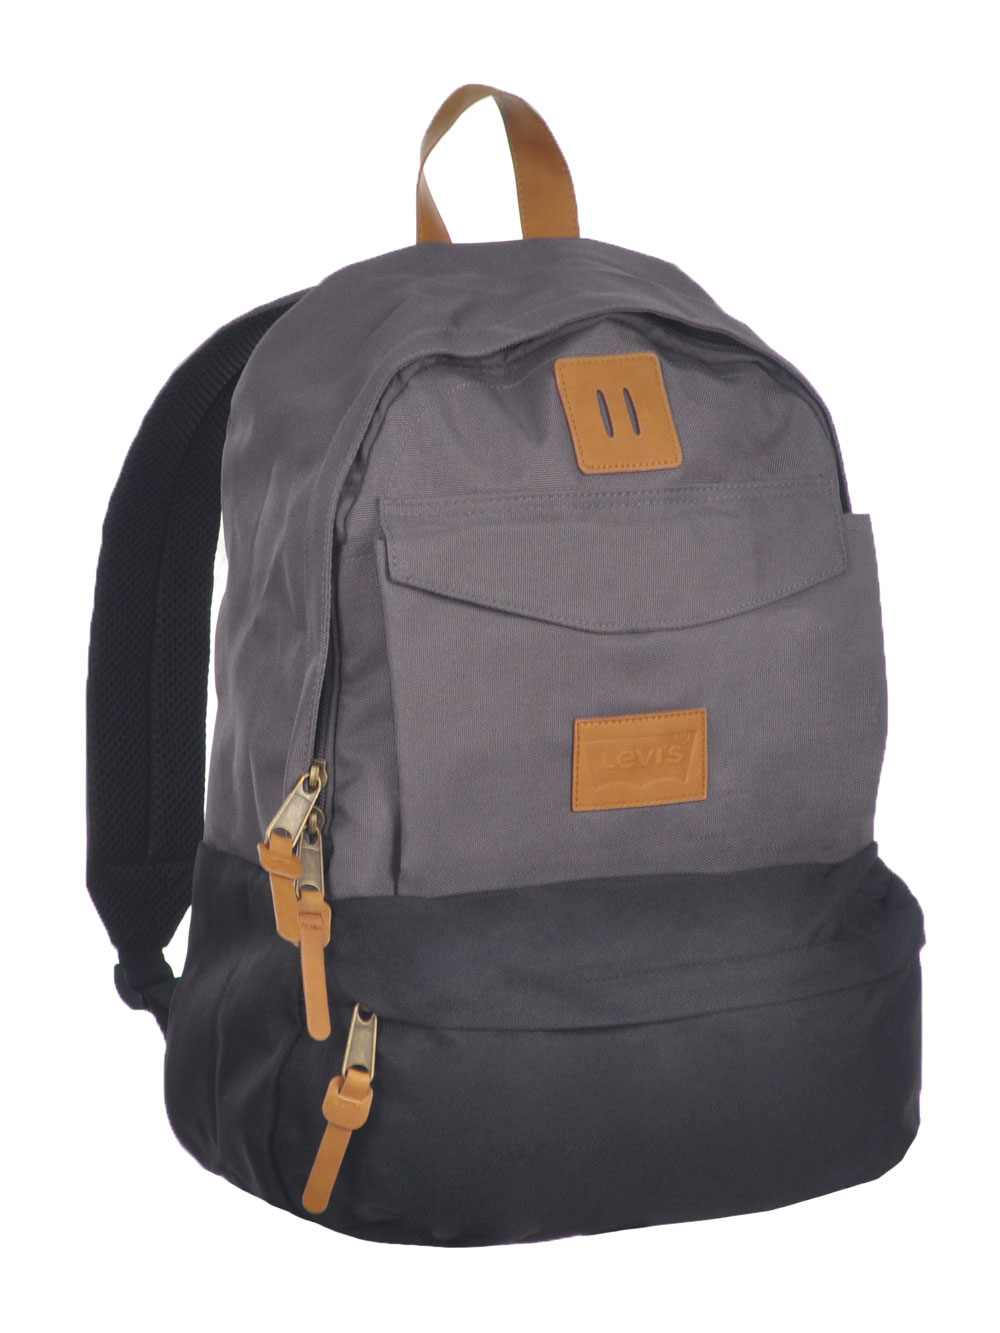 "Levi's ""Black Forest"" Backpack - charcoal gray, one size"